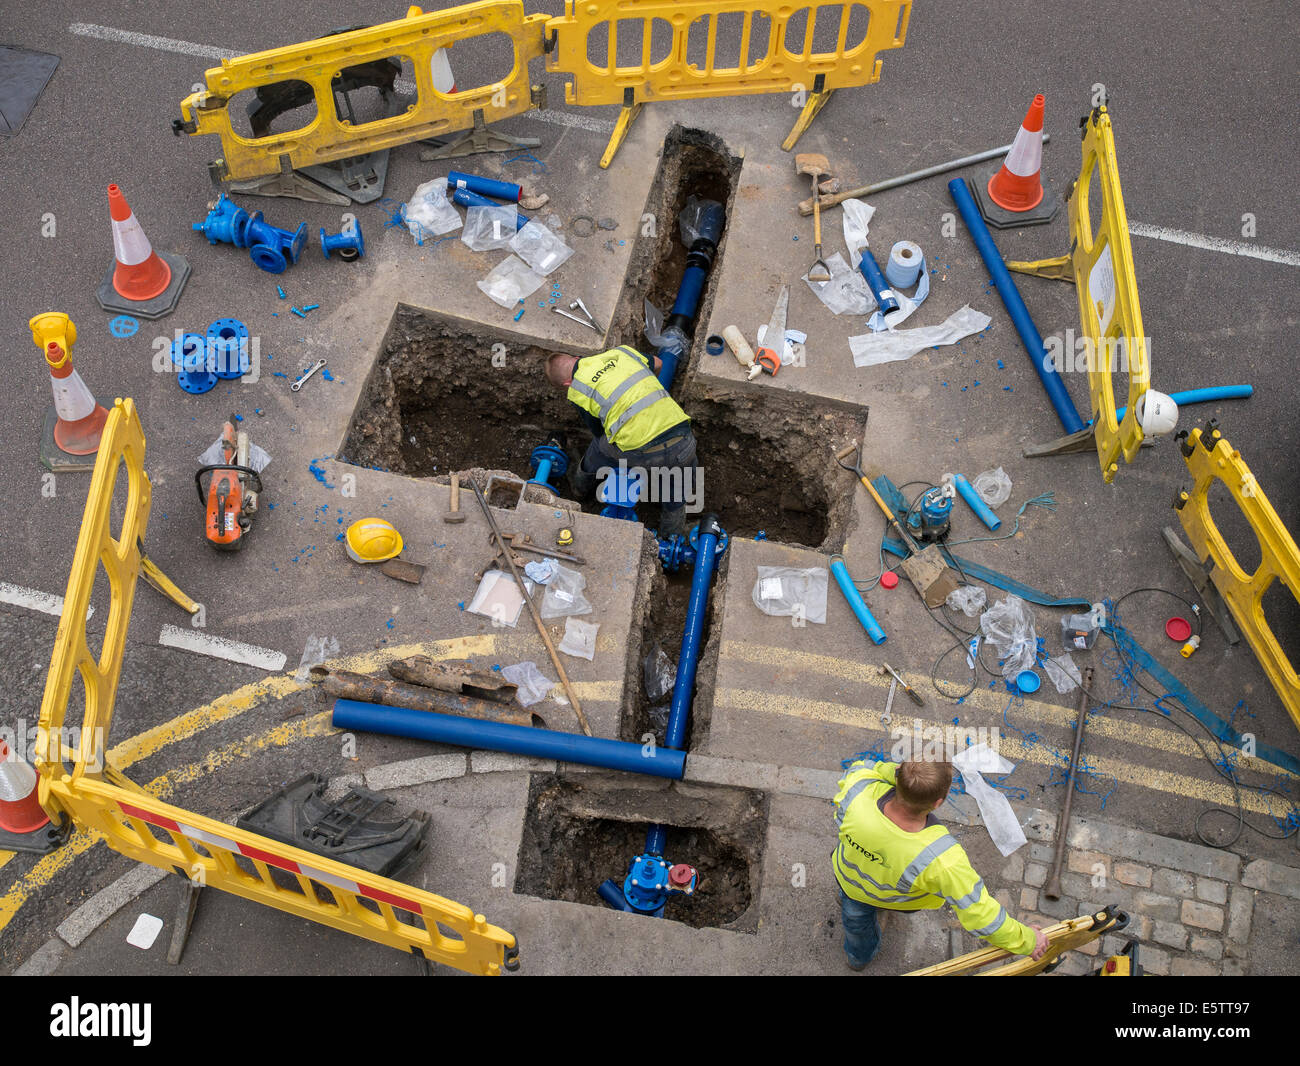 uk-roadworks-repair-and-replacement-of-u